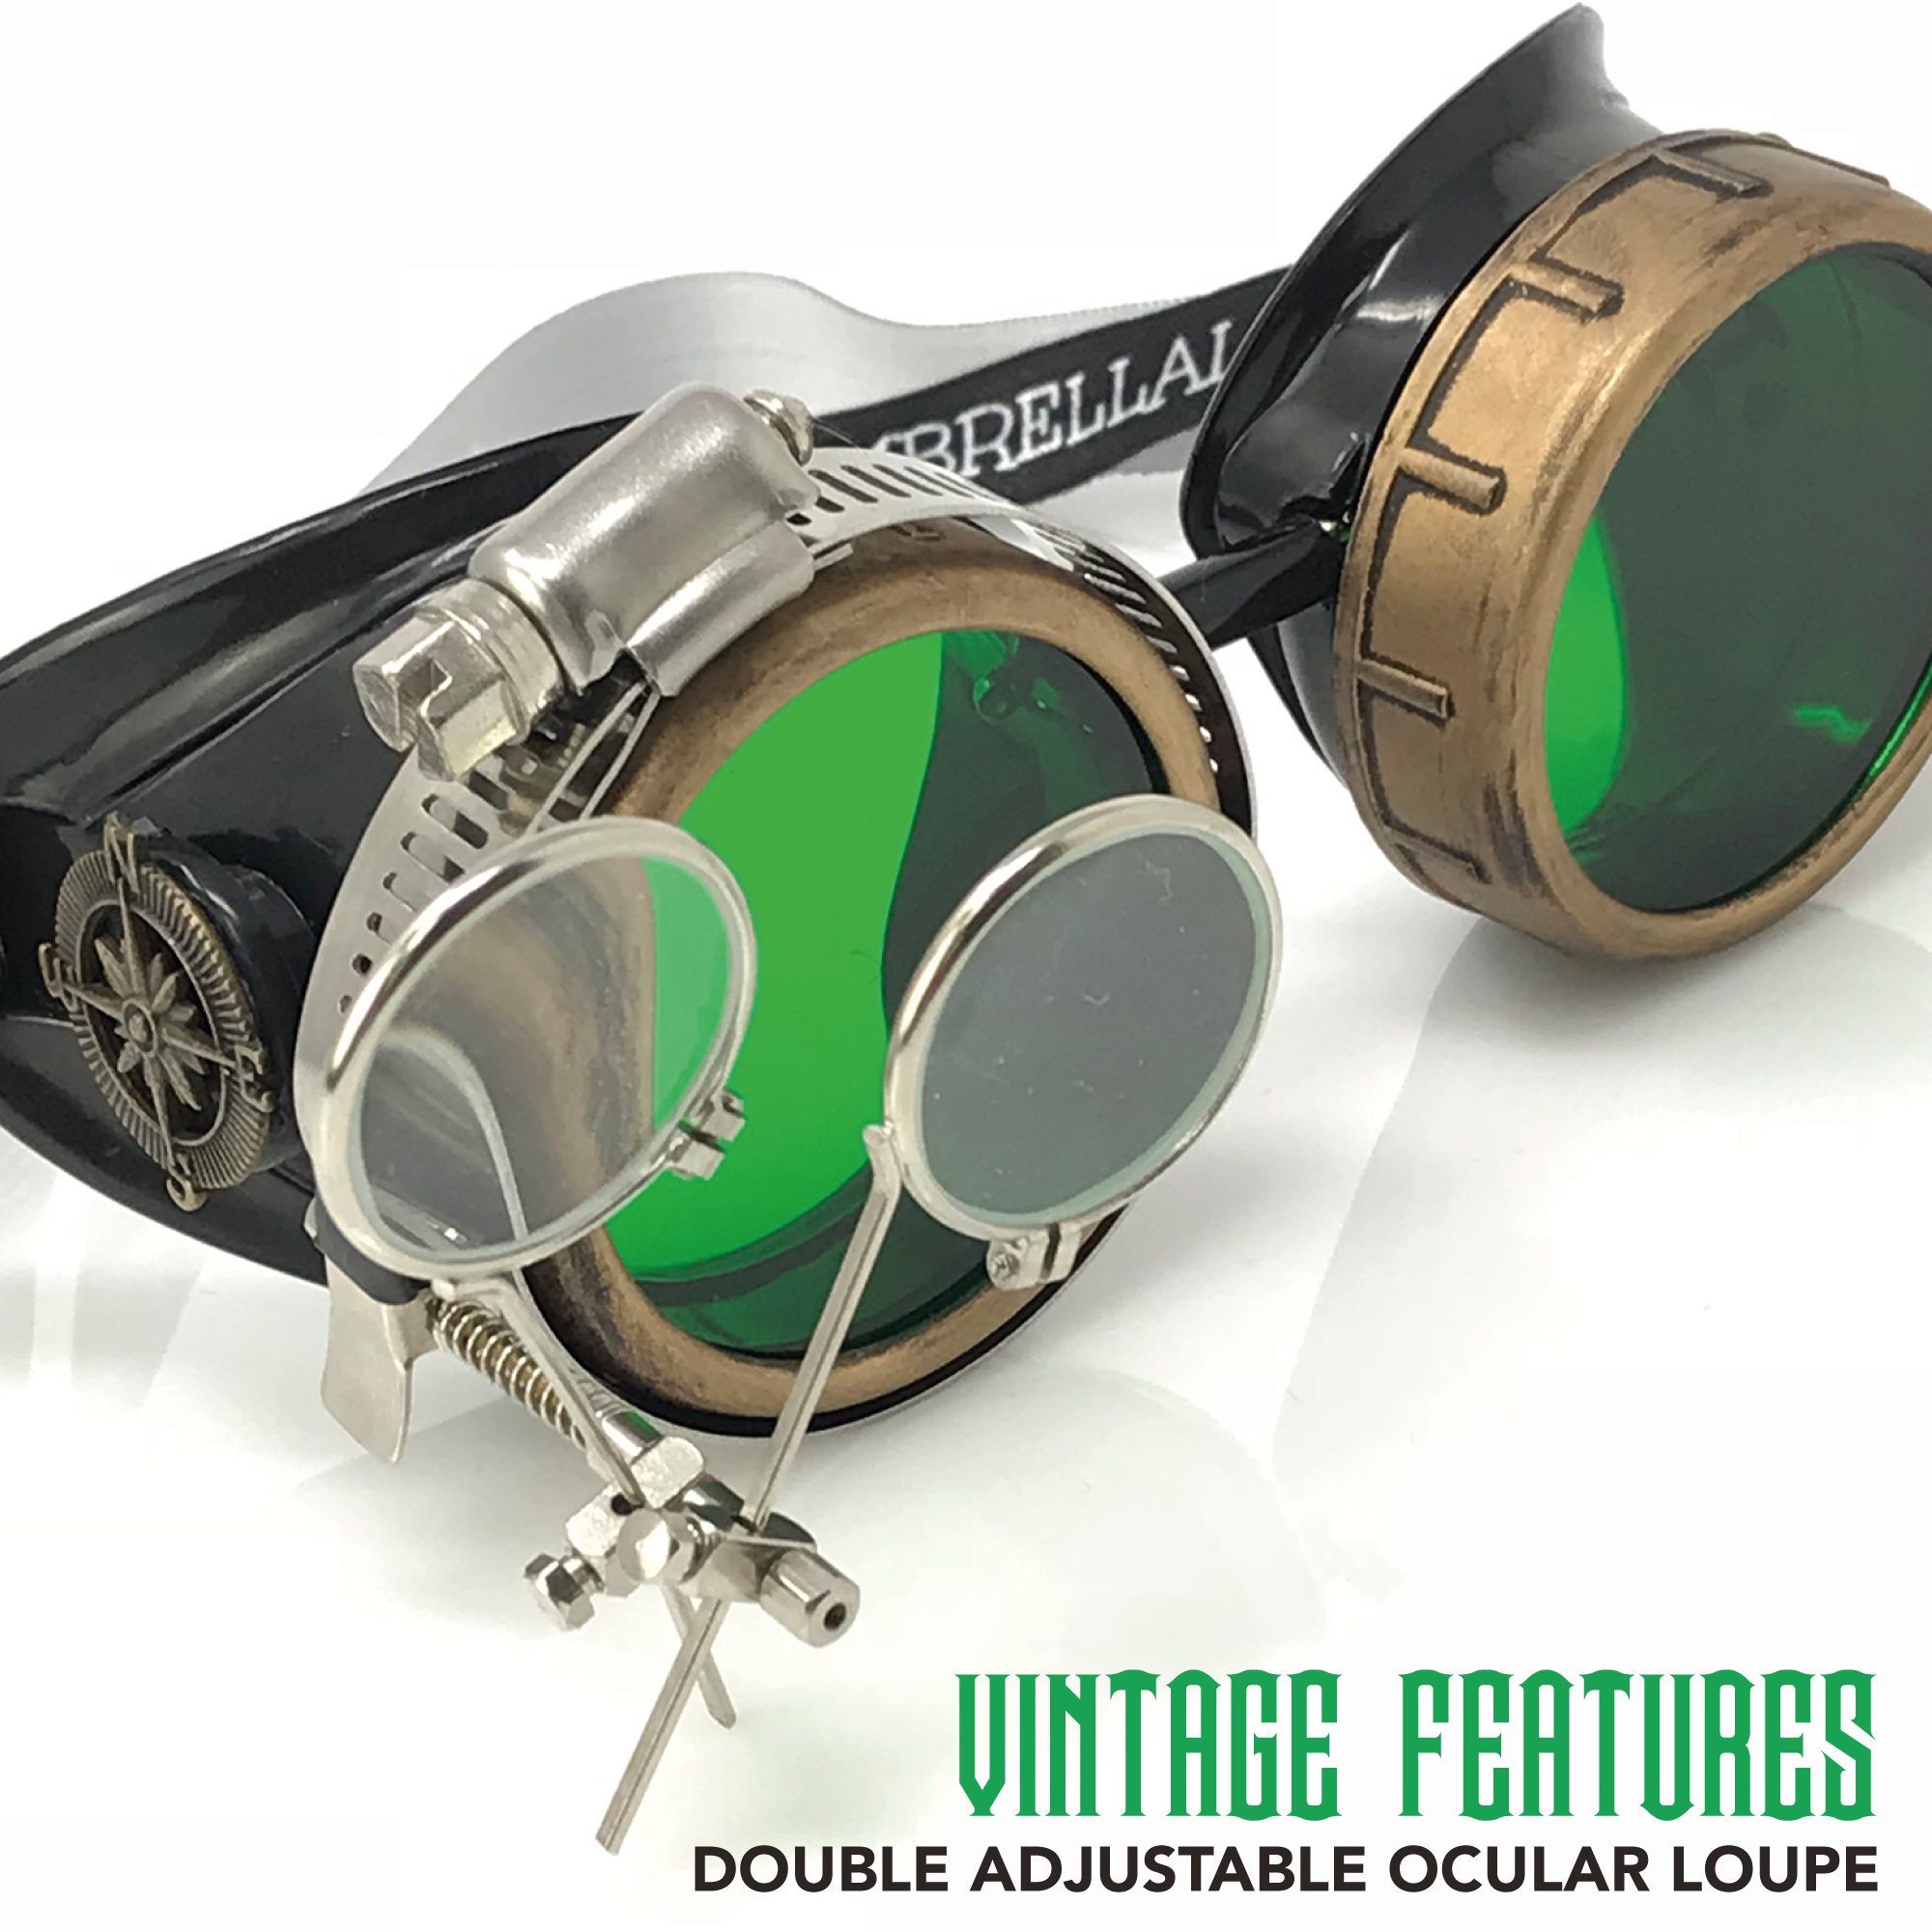 Steampunk Victorian Style Goggles with Compass Design, Emerald Green Lenses & Ocular Loupe by UMBRELLALABORATORY (Image #3)